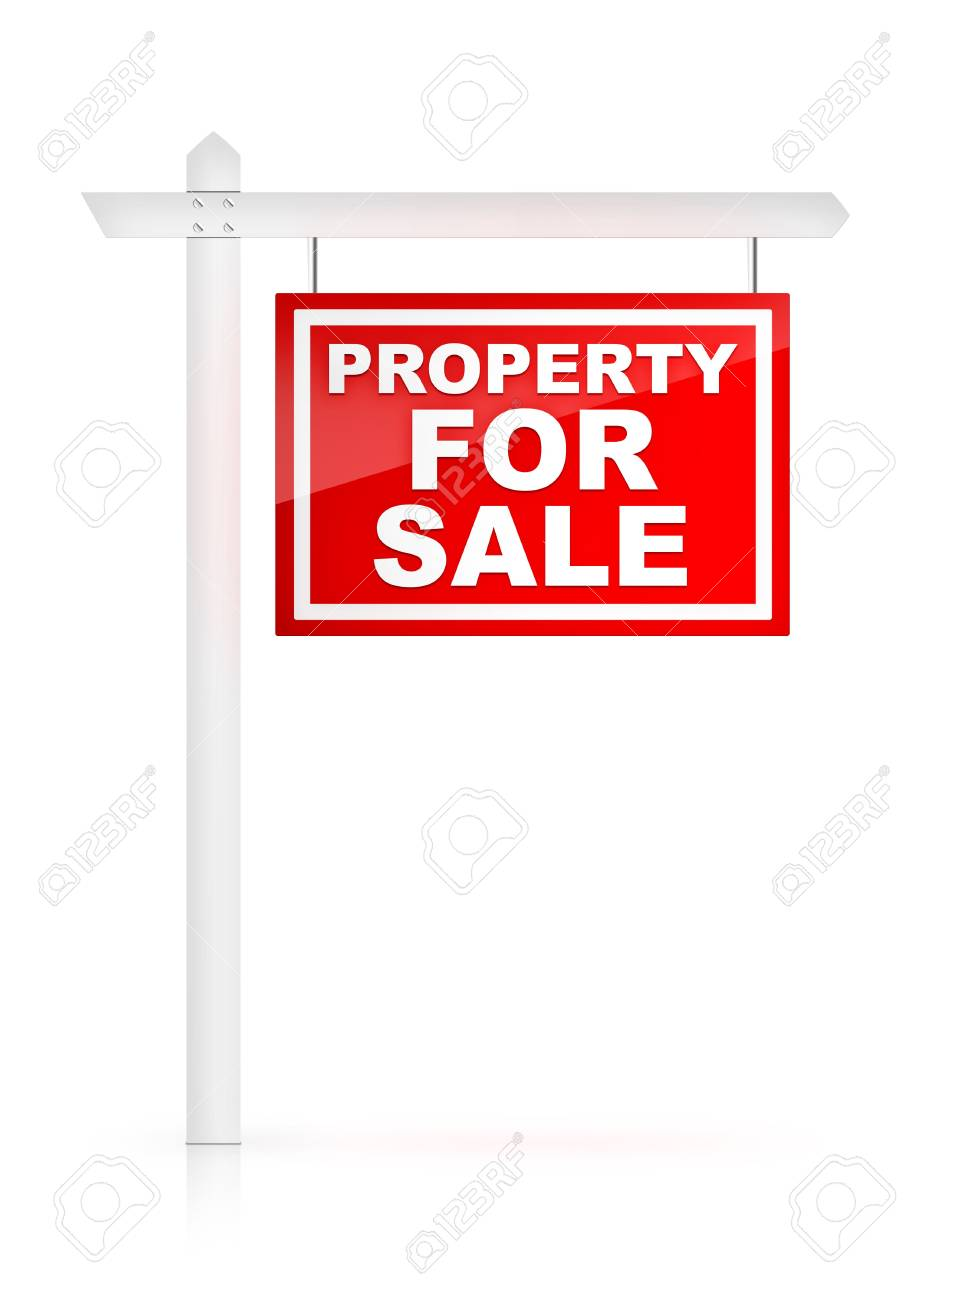 Property For Sale - Real Estate Tablet Stock Photo - 4913112